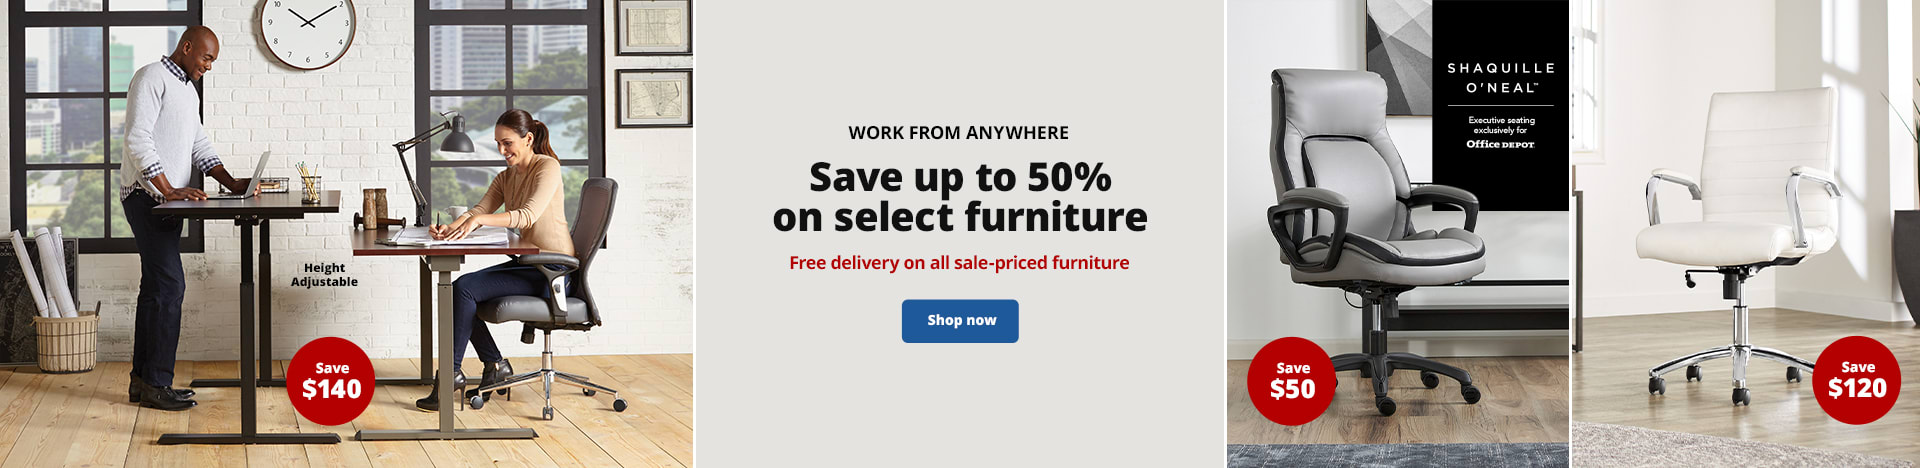 Work From Anywhere. Save up to 50% on select furniture. Free delivery on all sale-priced furniture